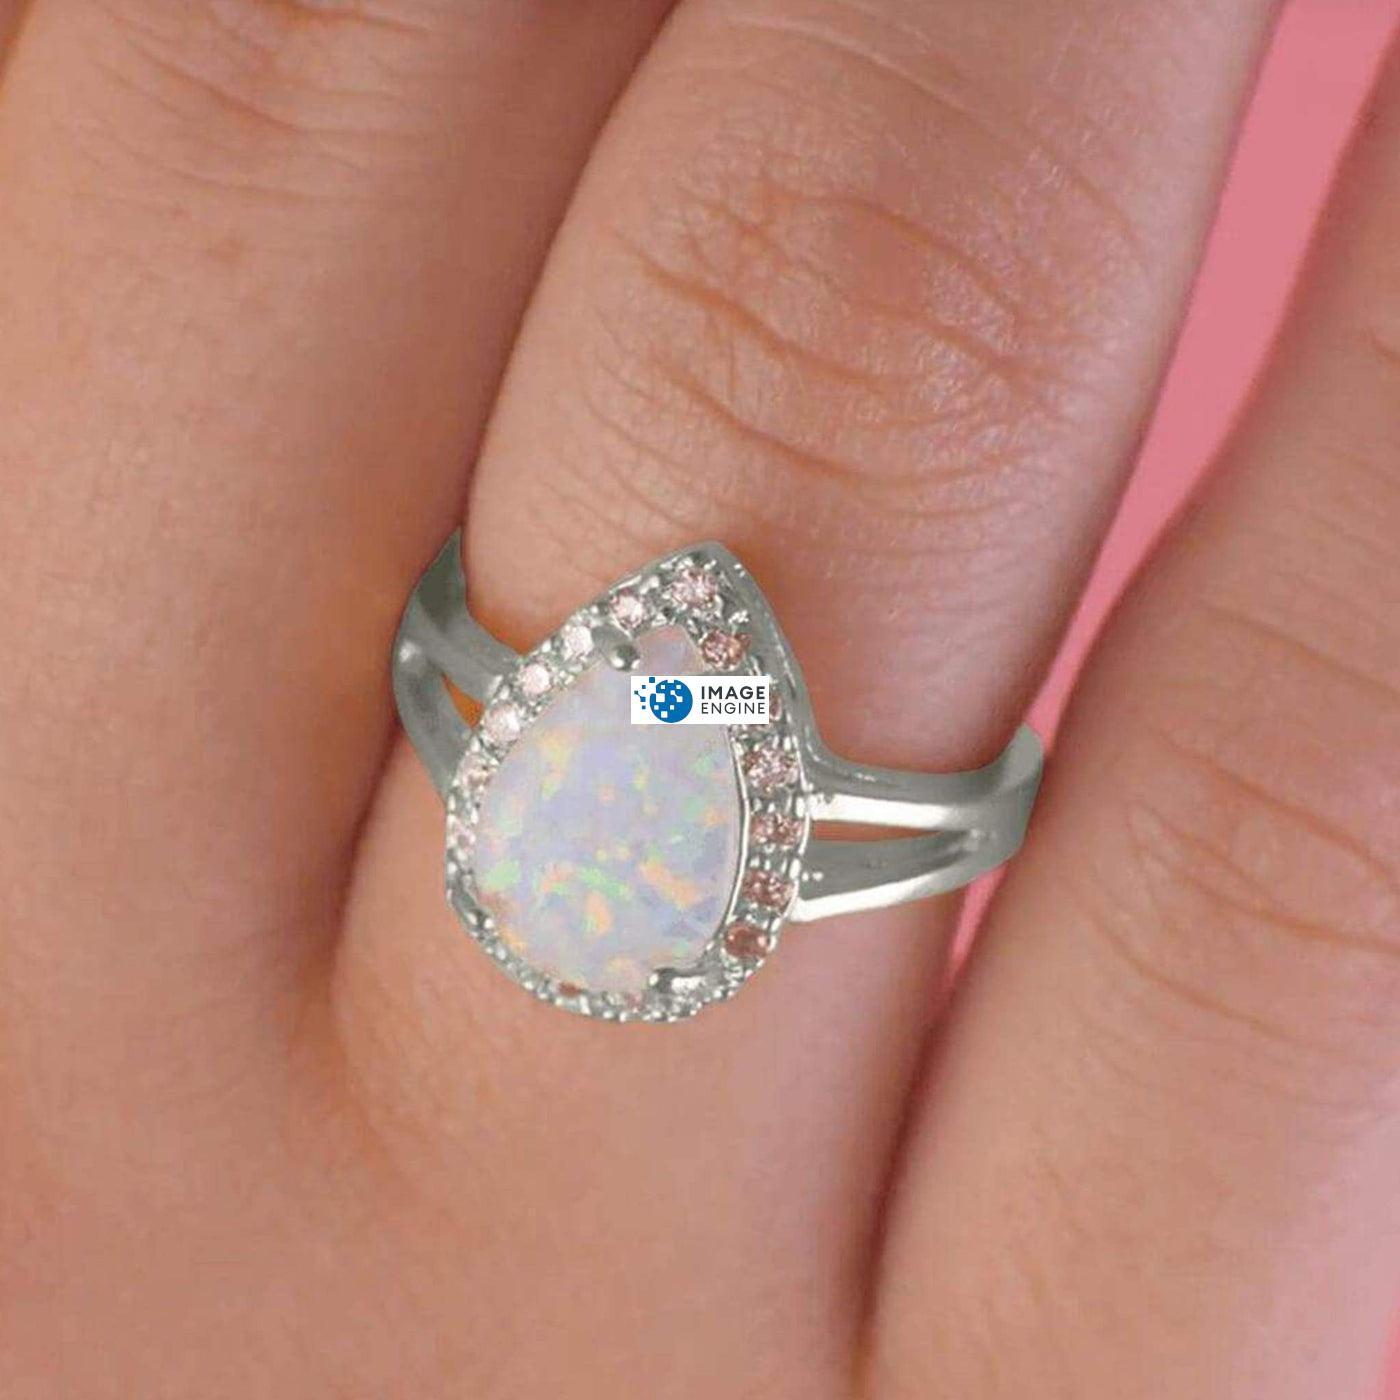 White Fire Champagne Opal Ring - Wearing on Ring Finger - 925 Sterling Silver